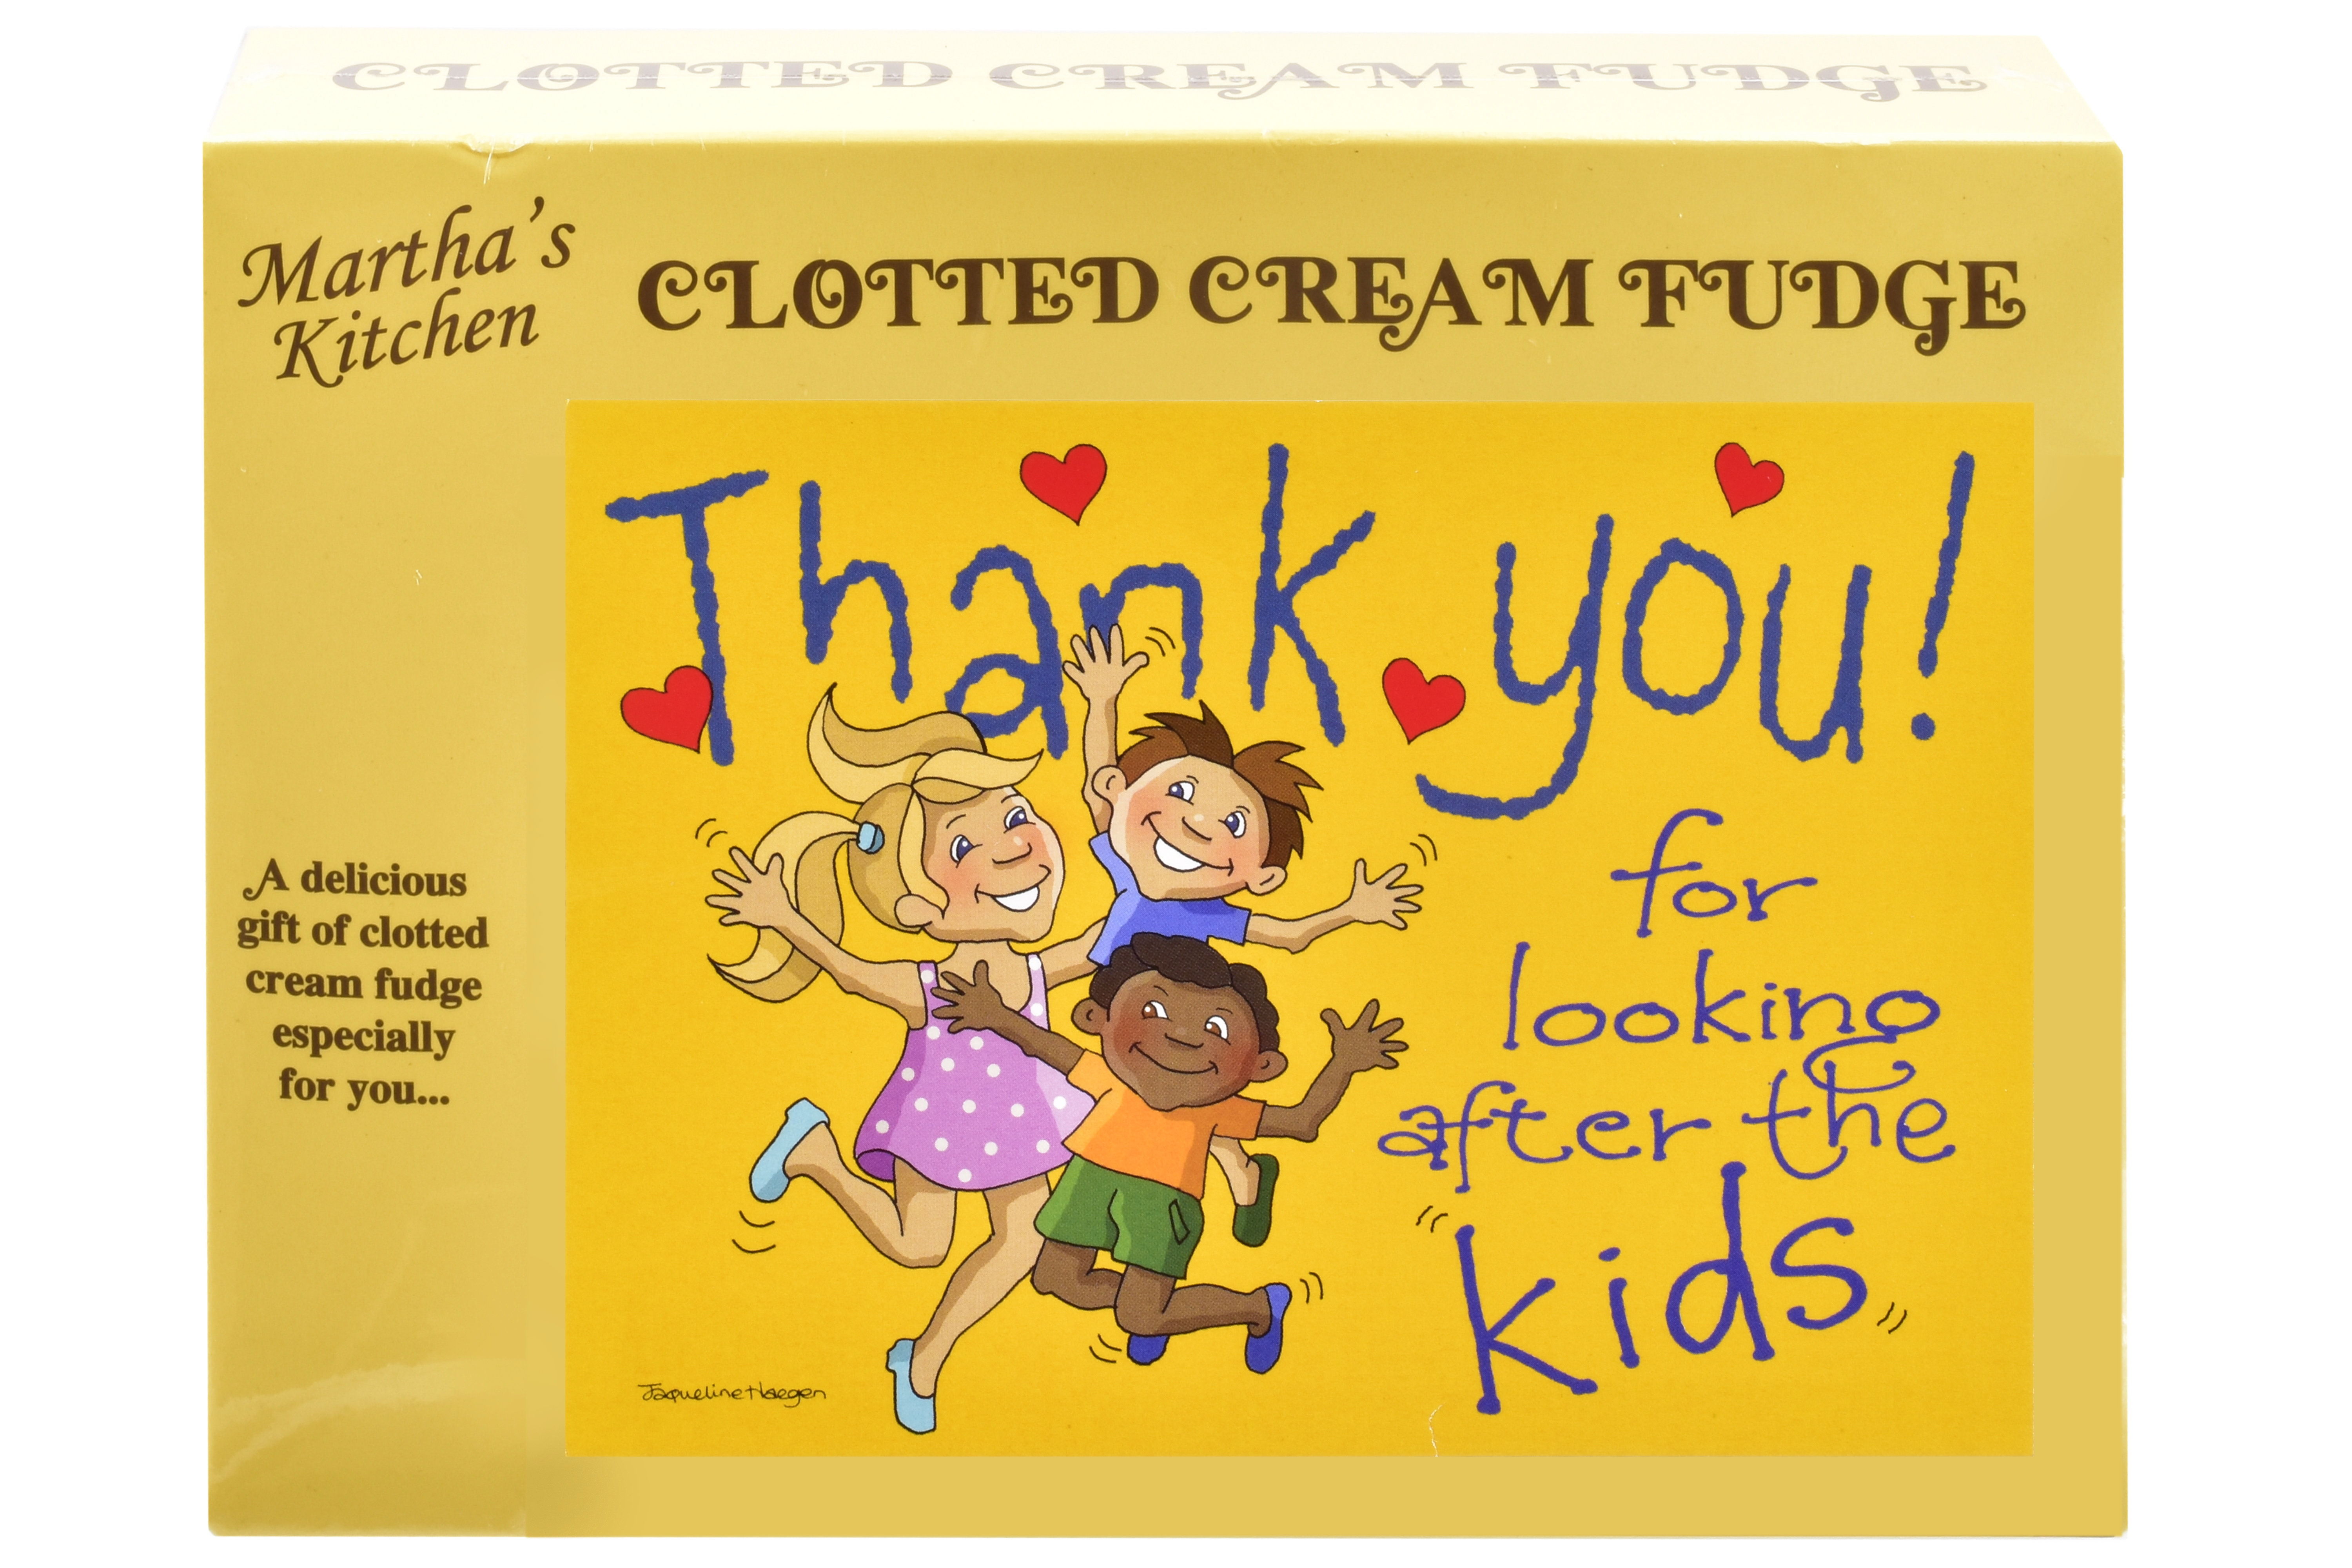 100g Clotted Cream Fudge 'Kids' Postcard Box